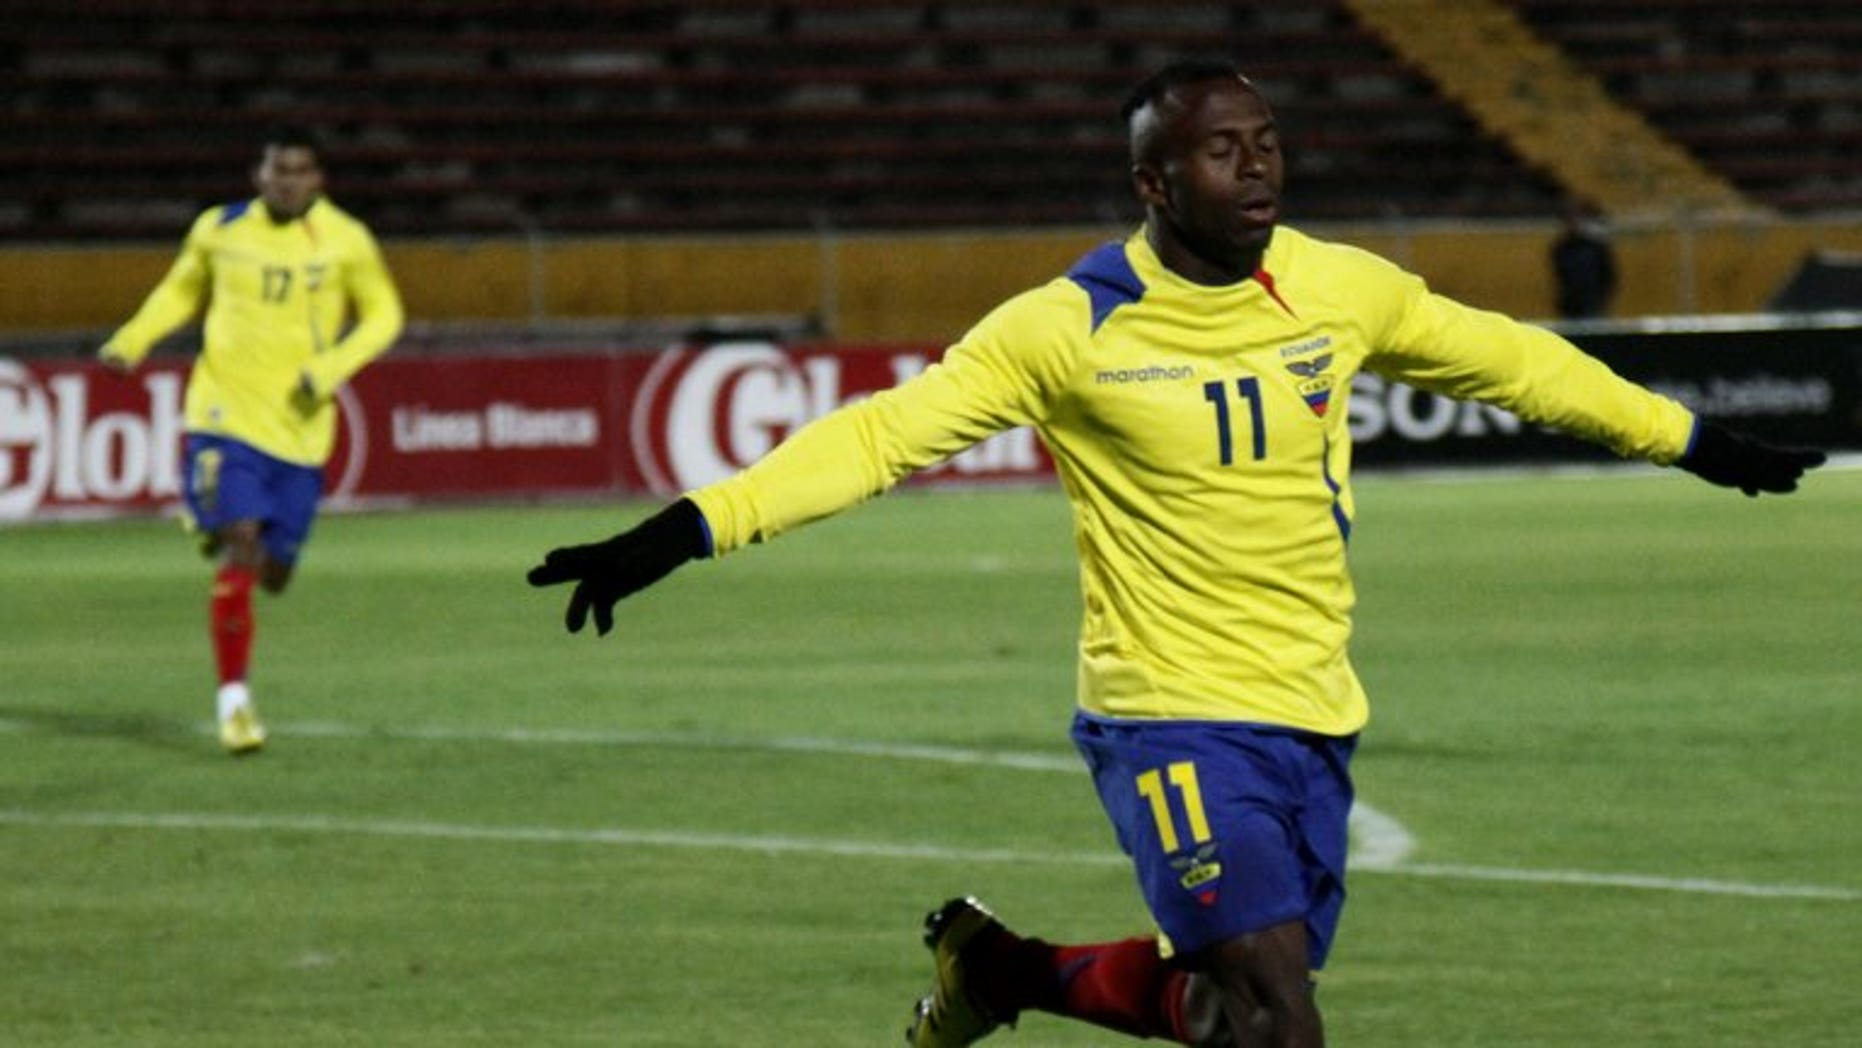 Ecuadorean player Christian Benitez celebrates after scoring against Venezuela in Quito on November 17, 2010. Benitez has died suddenly in Qatar at the age of 27, his agent Jose Chamorro said.